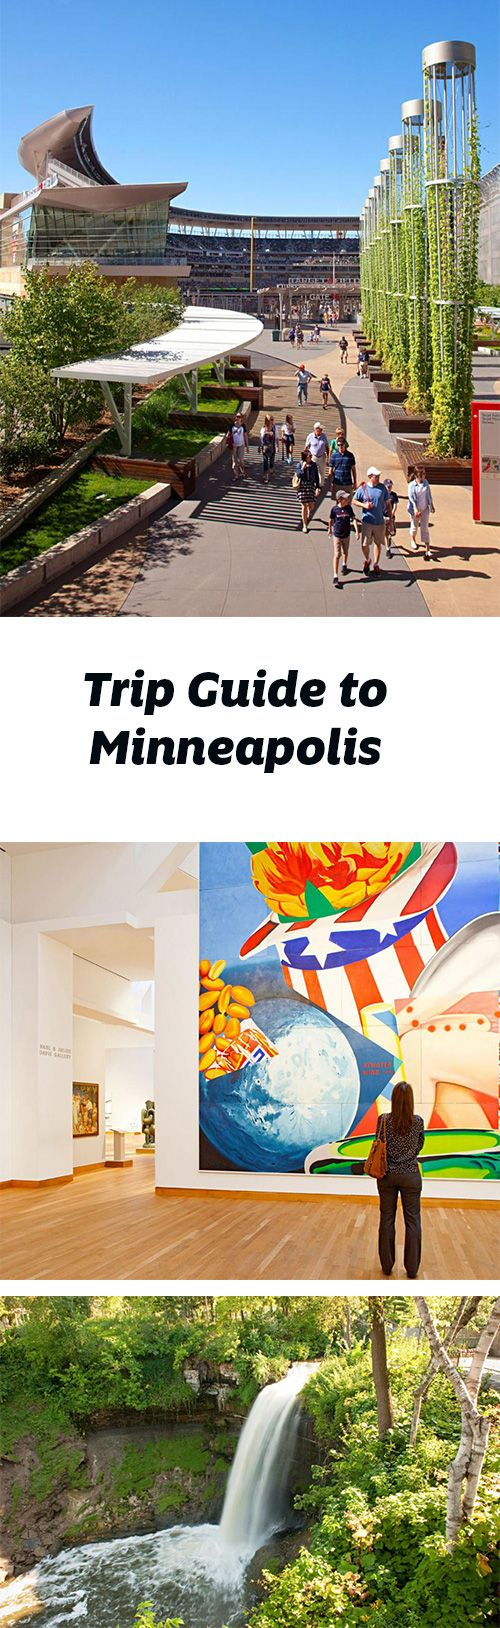 The larger of the Twin Cities offers art, sports, food and shopping on a grand scale. Trip guide: http://www.midwestliving.com/travel/minnesota/minneapolis/minneapolis-trip-guide/